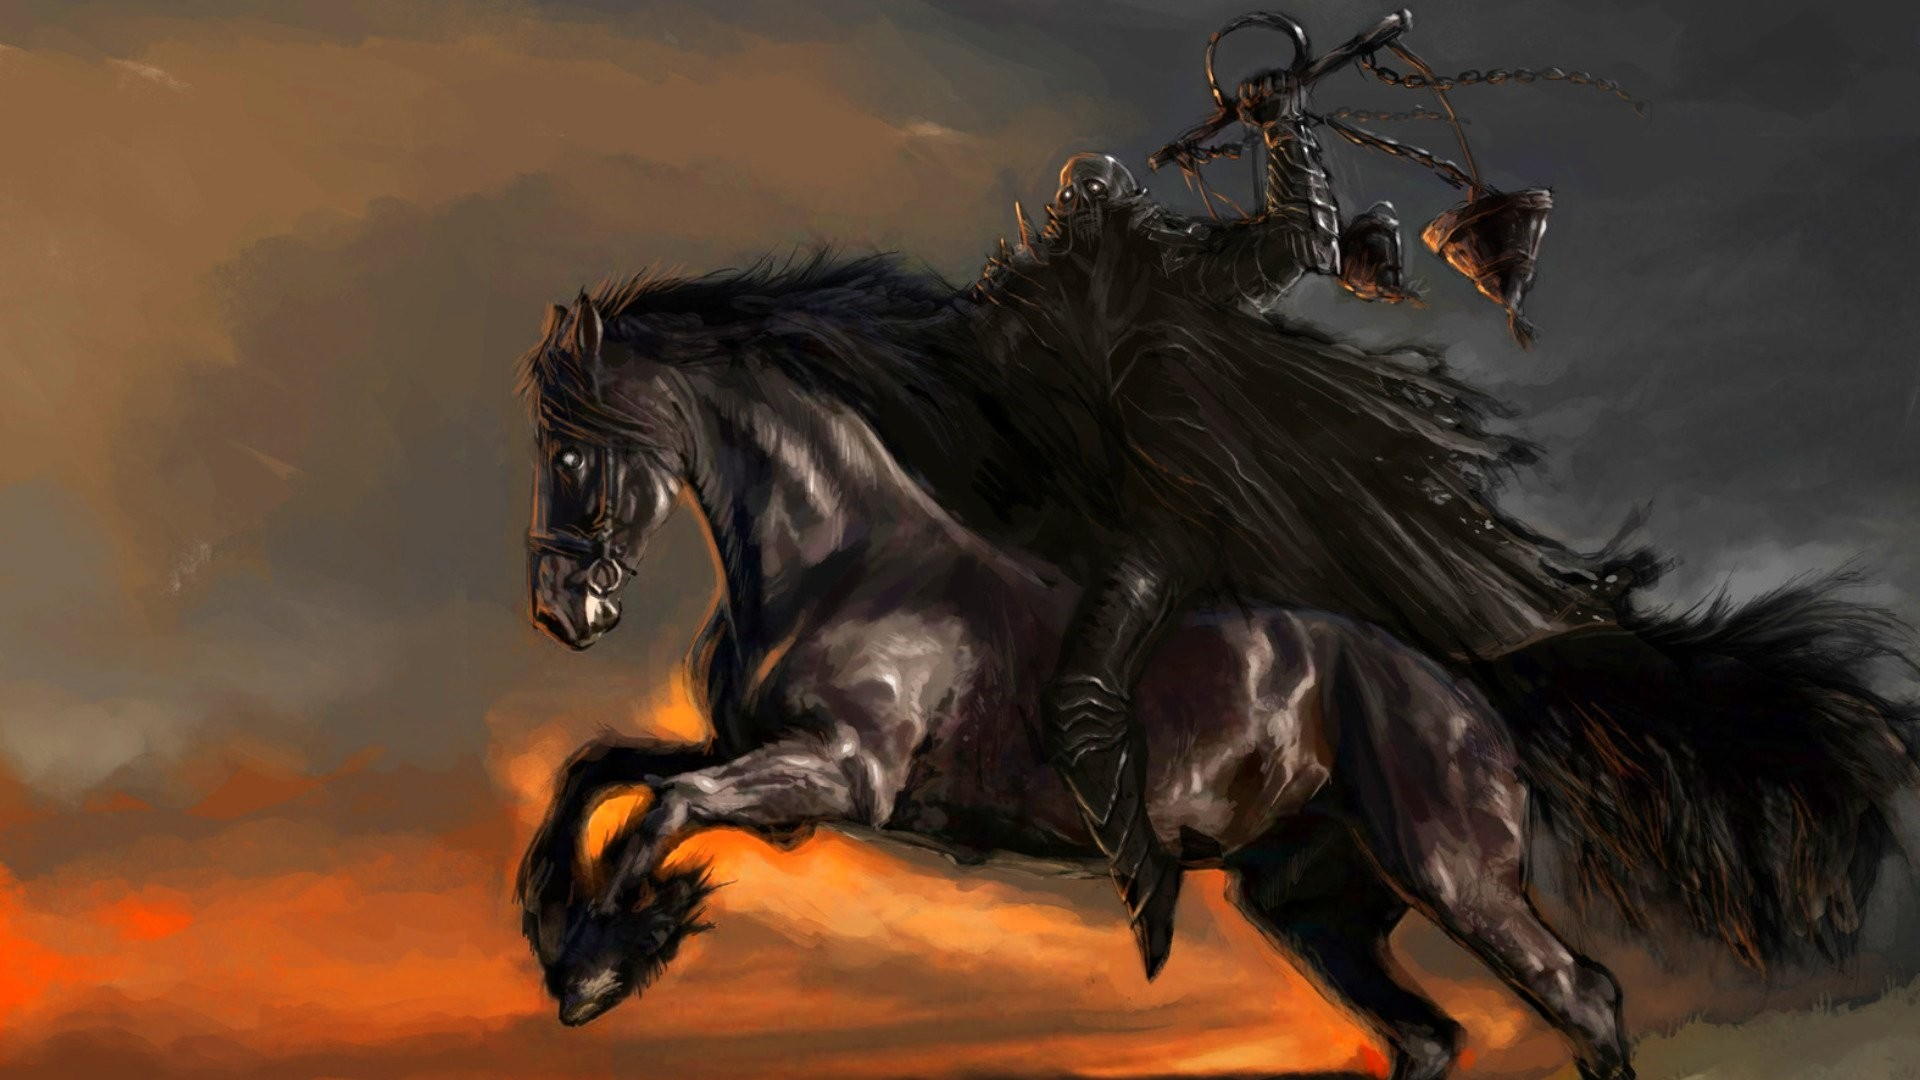 Rider On A Horse Art Wallpaper image hd